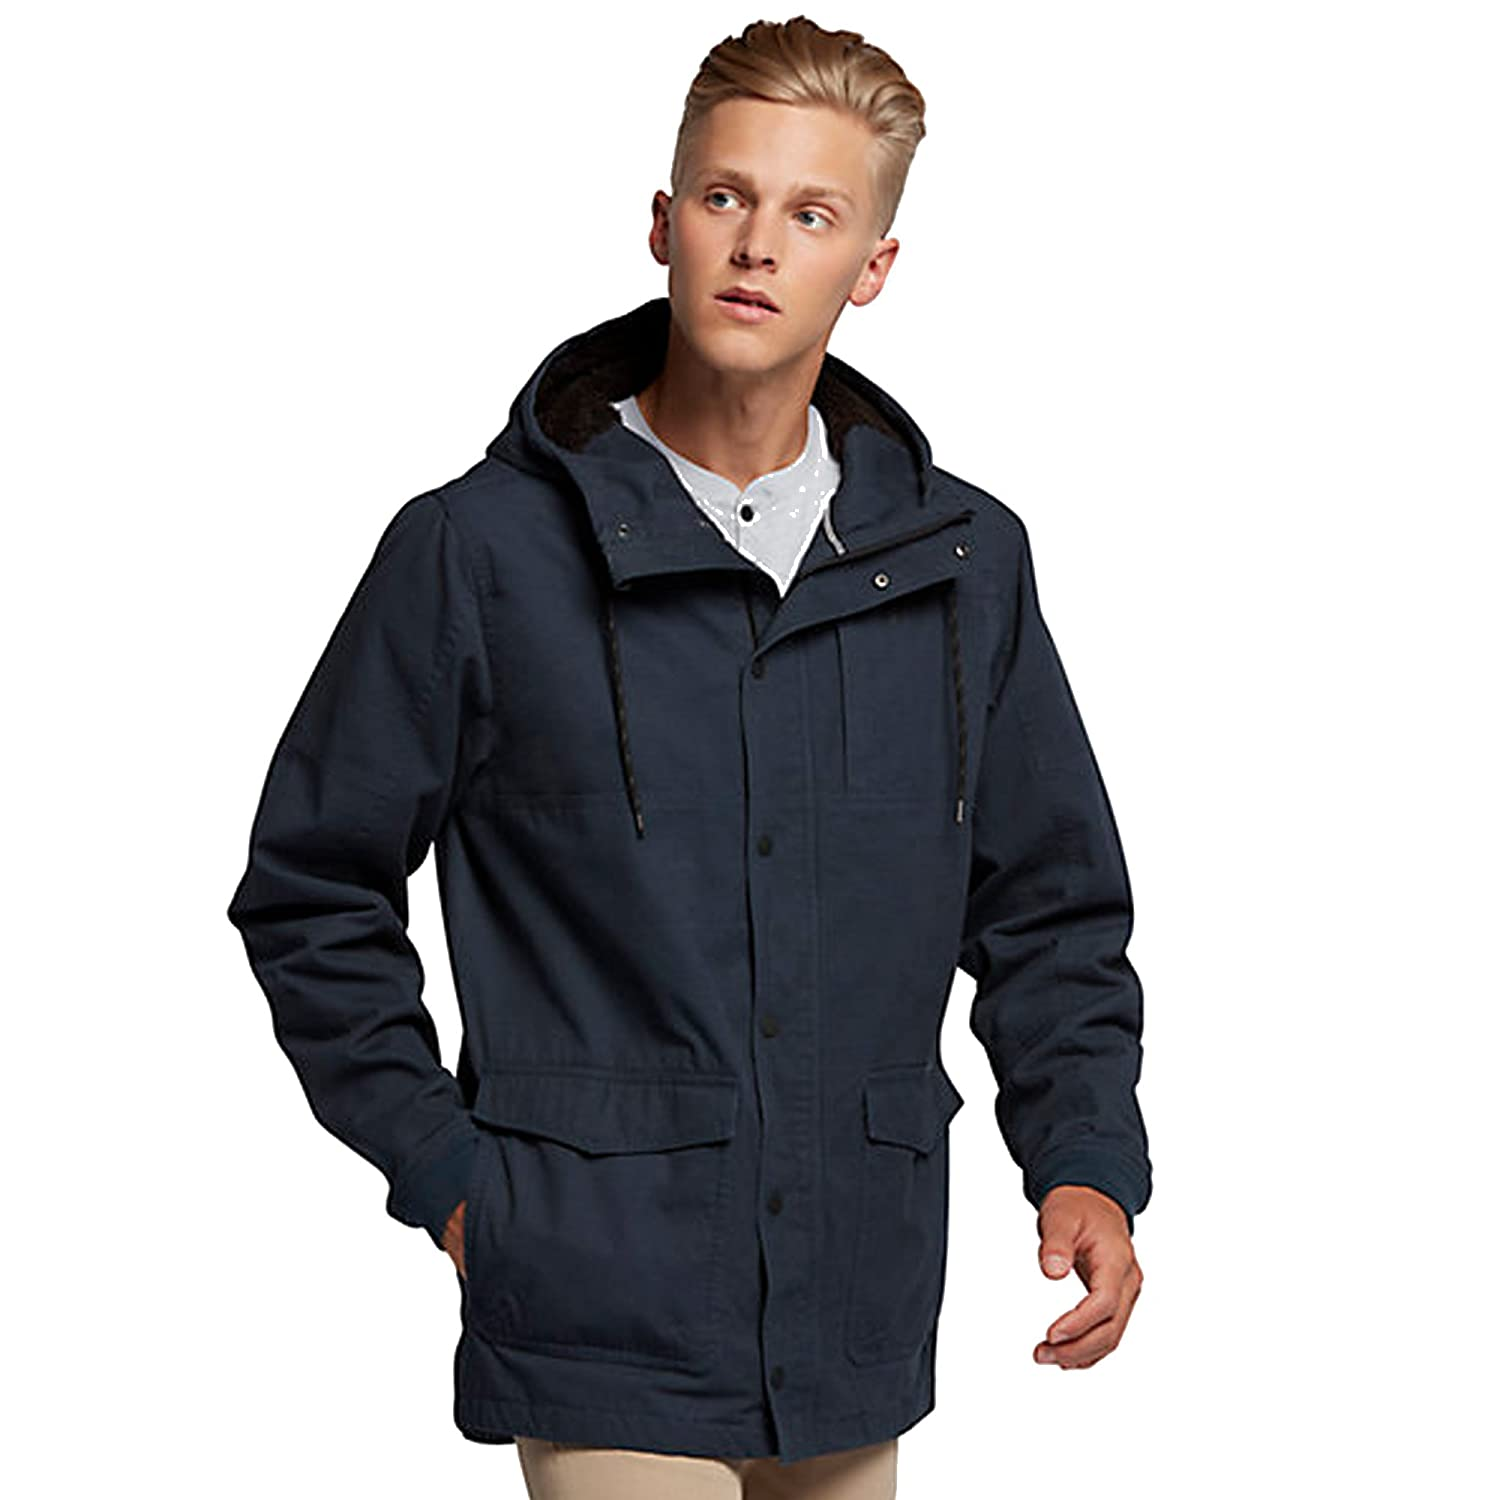 Hurley MJK0002100 Men's Protect Plus Jacket